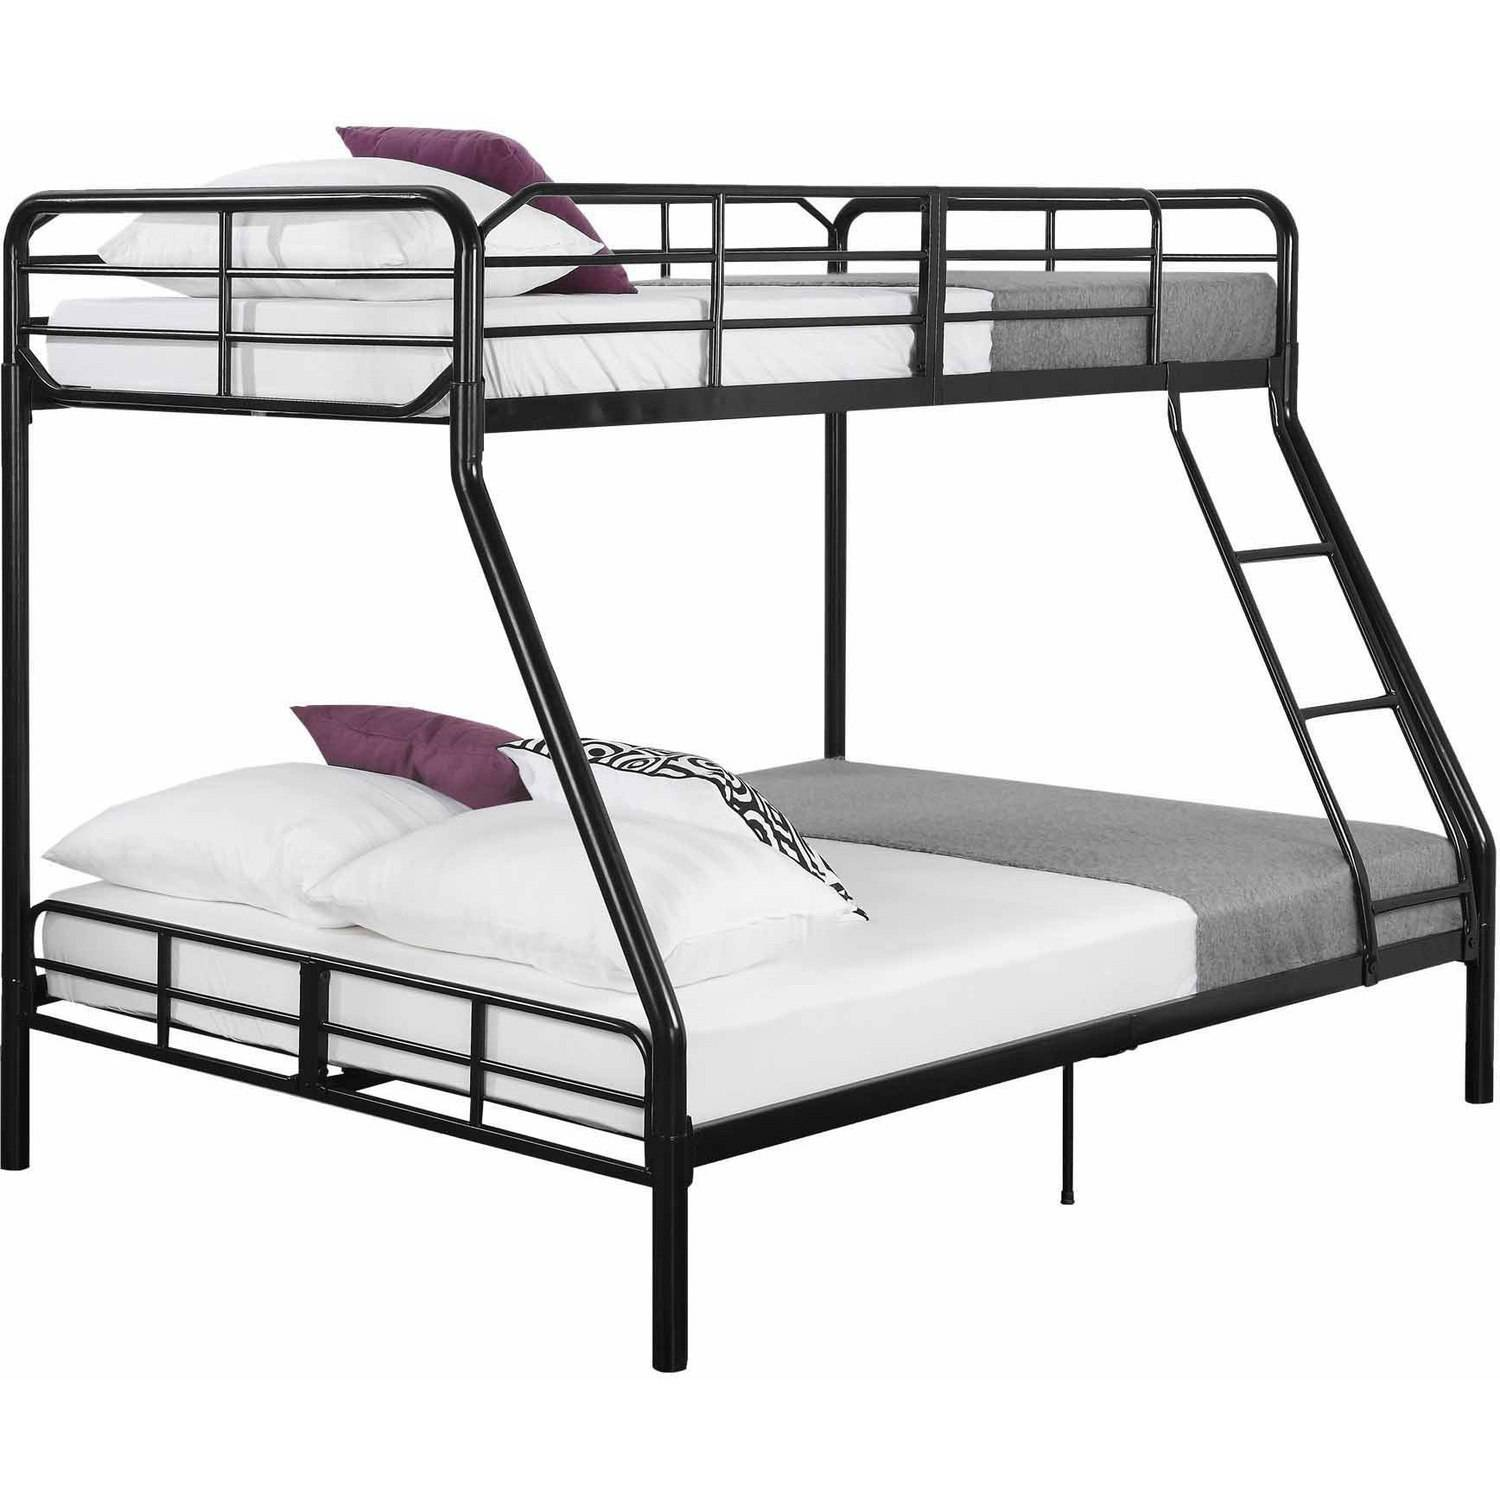 Twin over full metal bunk bed w ladder kids bedroom Black bunk beds